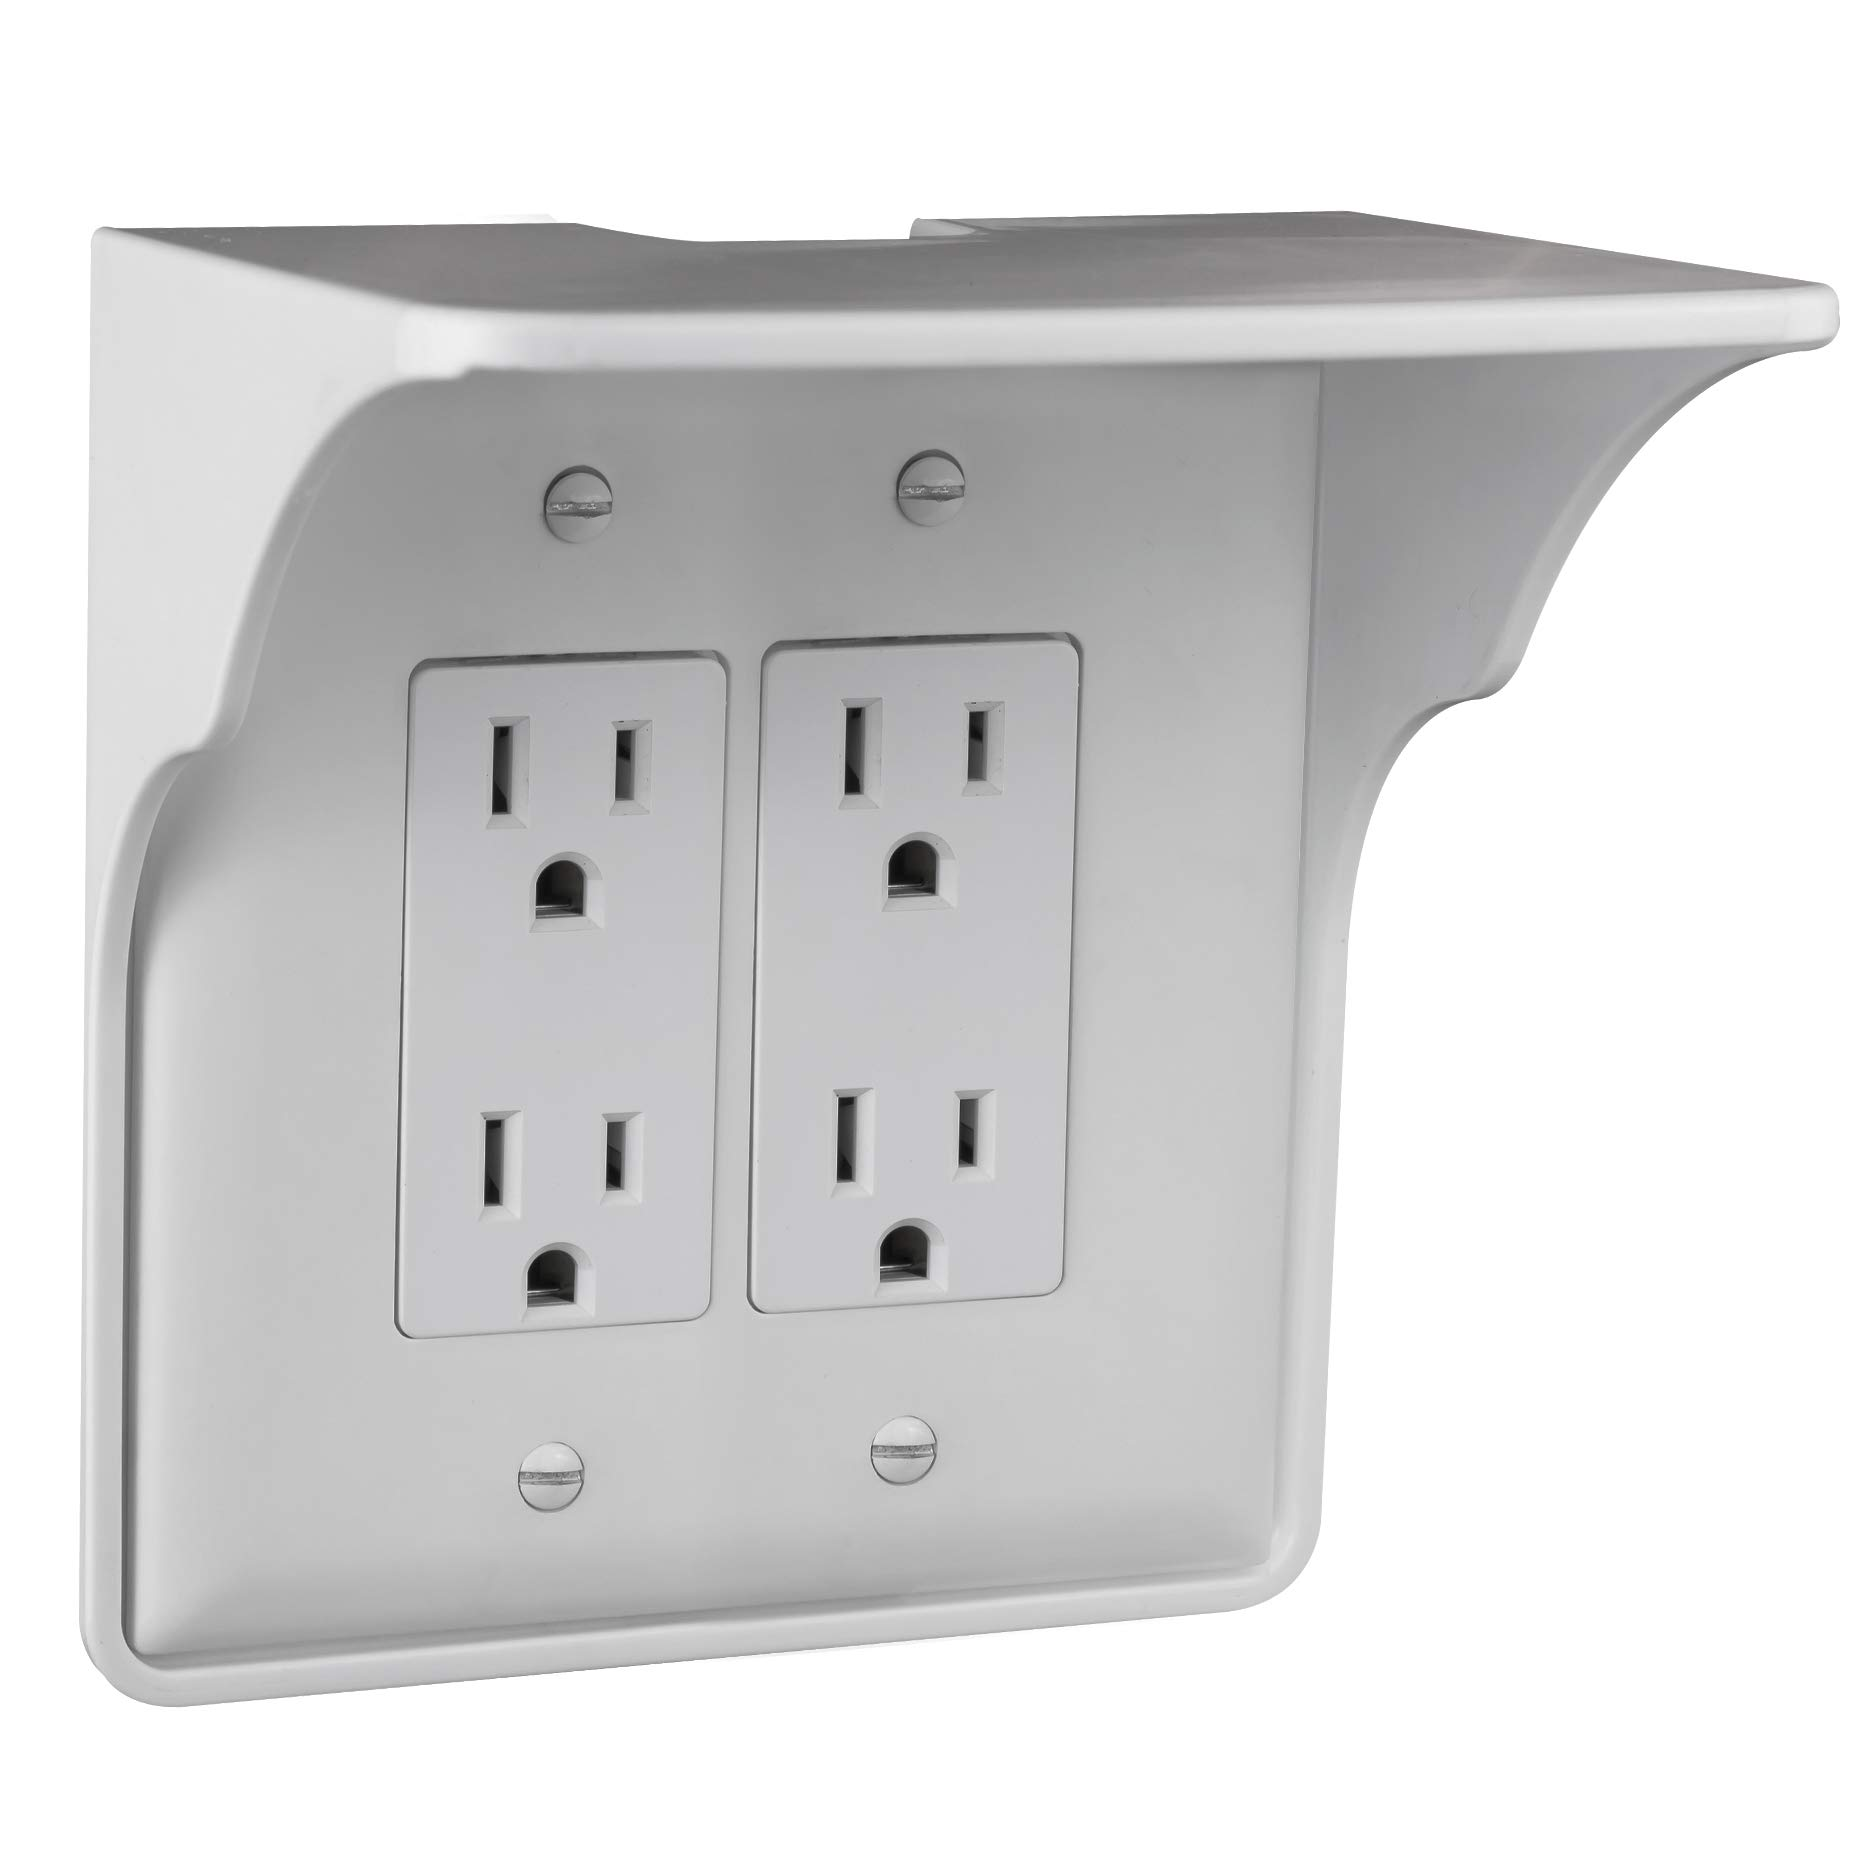 Storage Theory   Double Outlet Power Perch   Ultimate Outlet Shelf   Easy Installation, No Additional Hardware Required   Holds Up to 10lbs   White Color   Single Shelf by Storage Theory